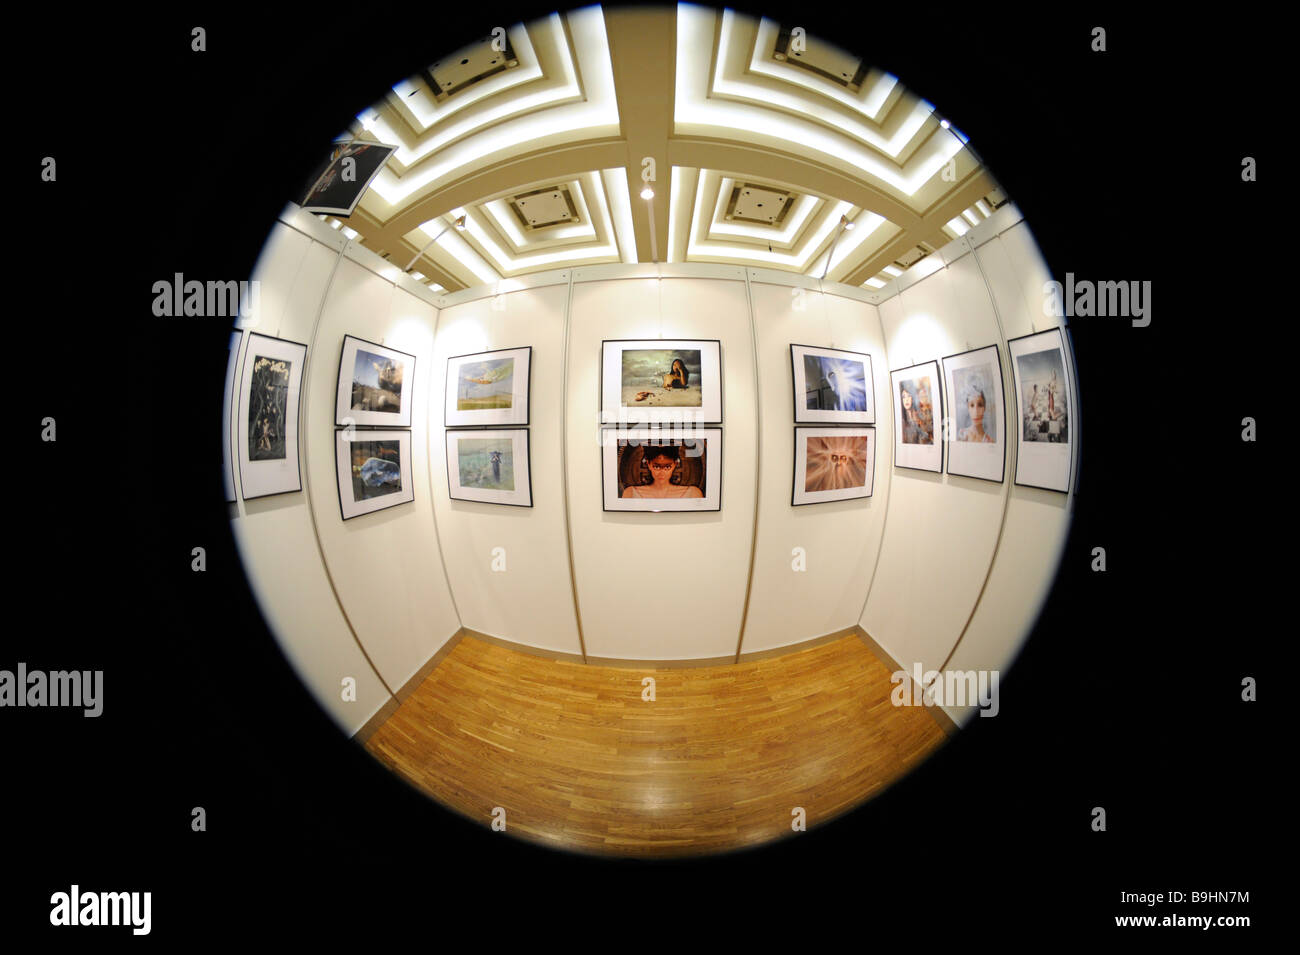 Fisheye picture, gallery, exhibition, photography - Stock Image